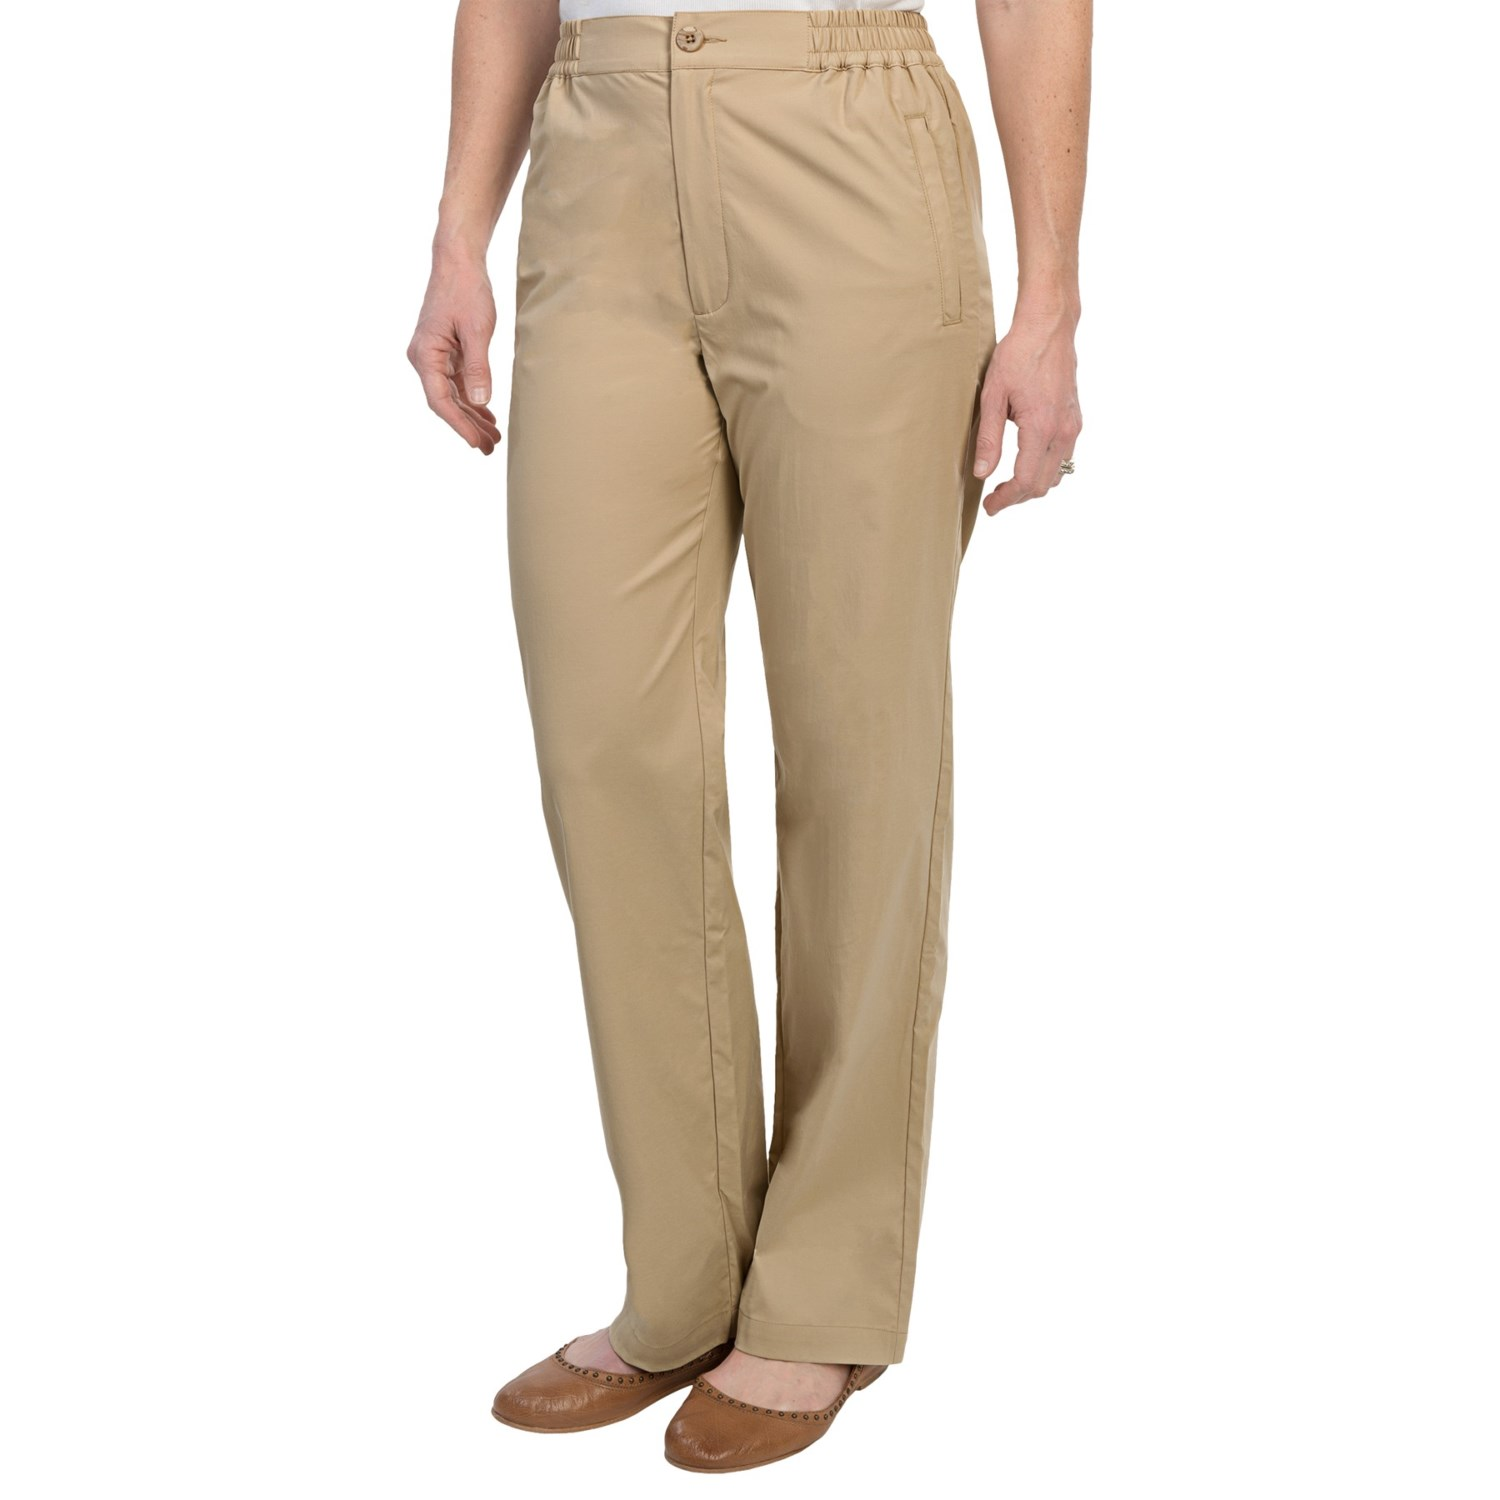 Awesome Alice  Olivia Suede Flare Pants In Brown TAN  Lyst